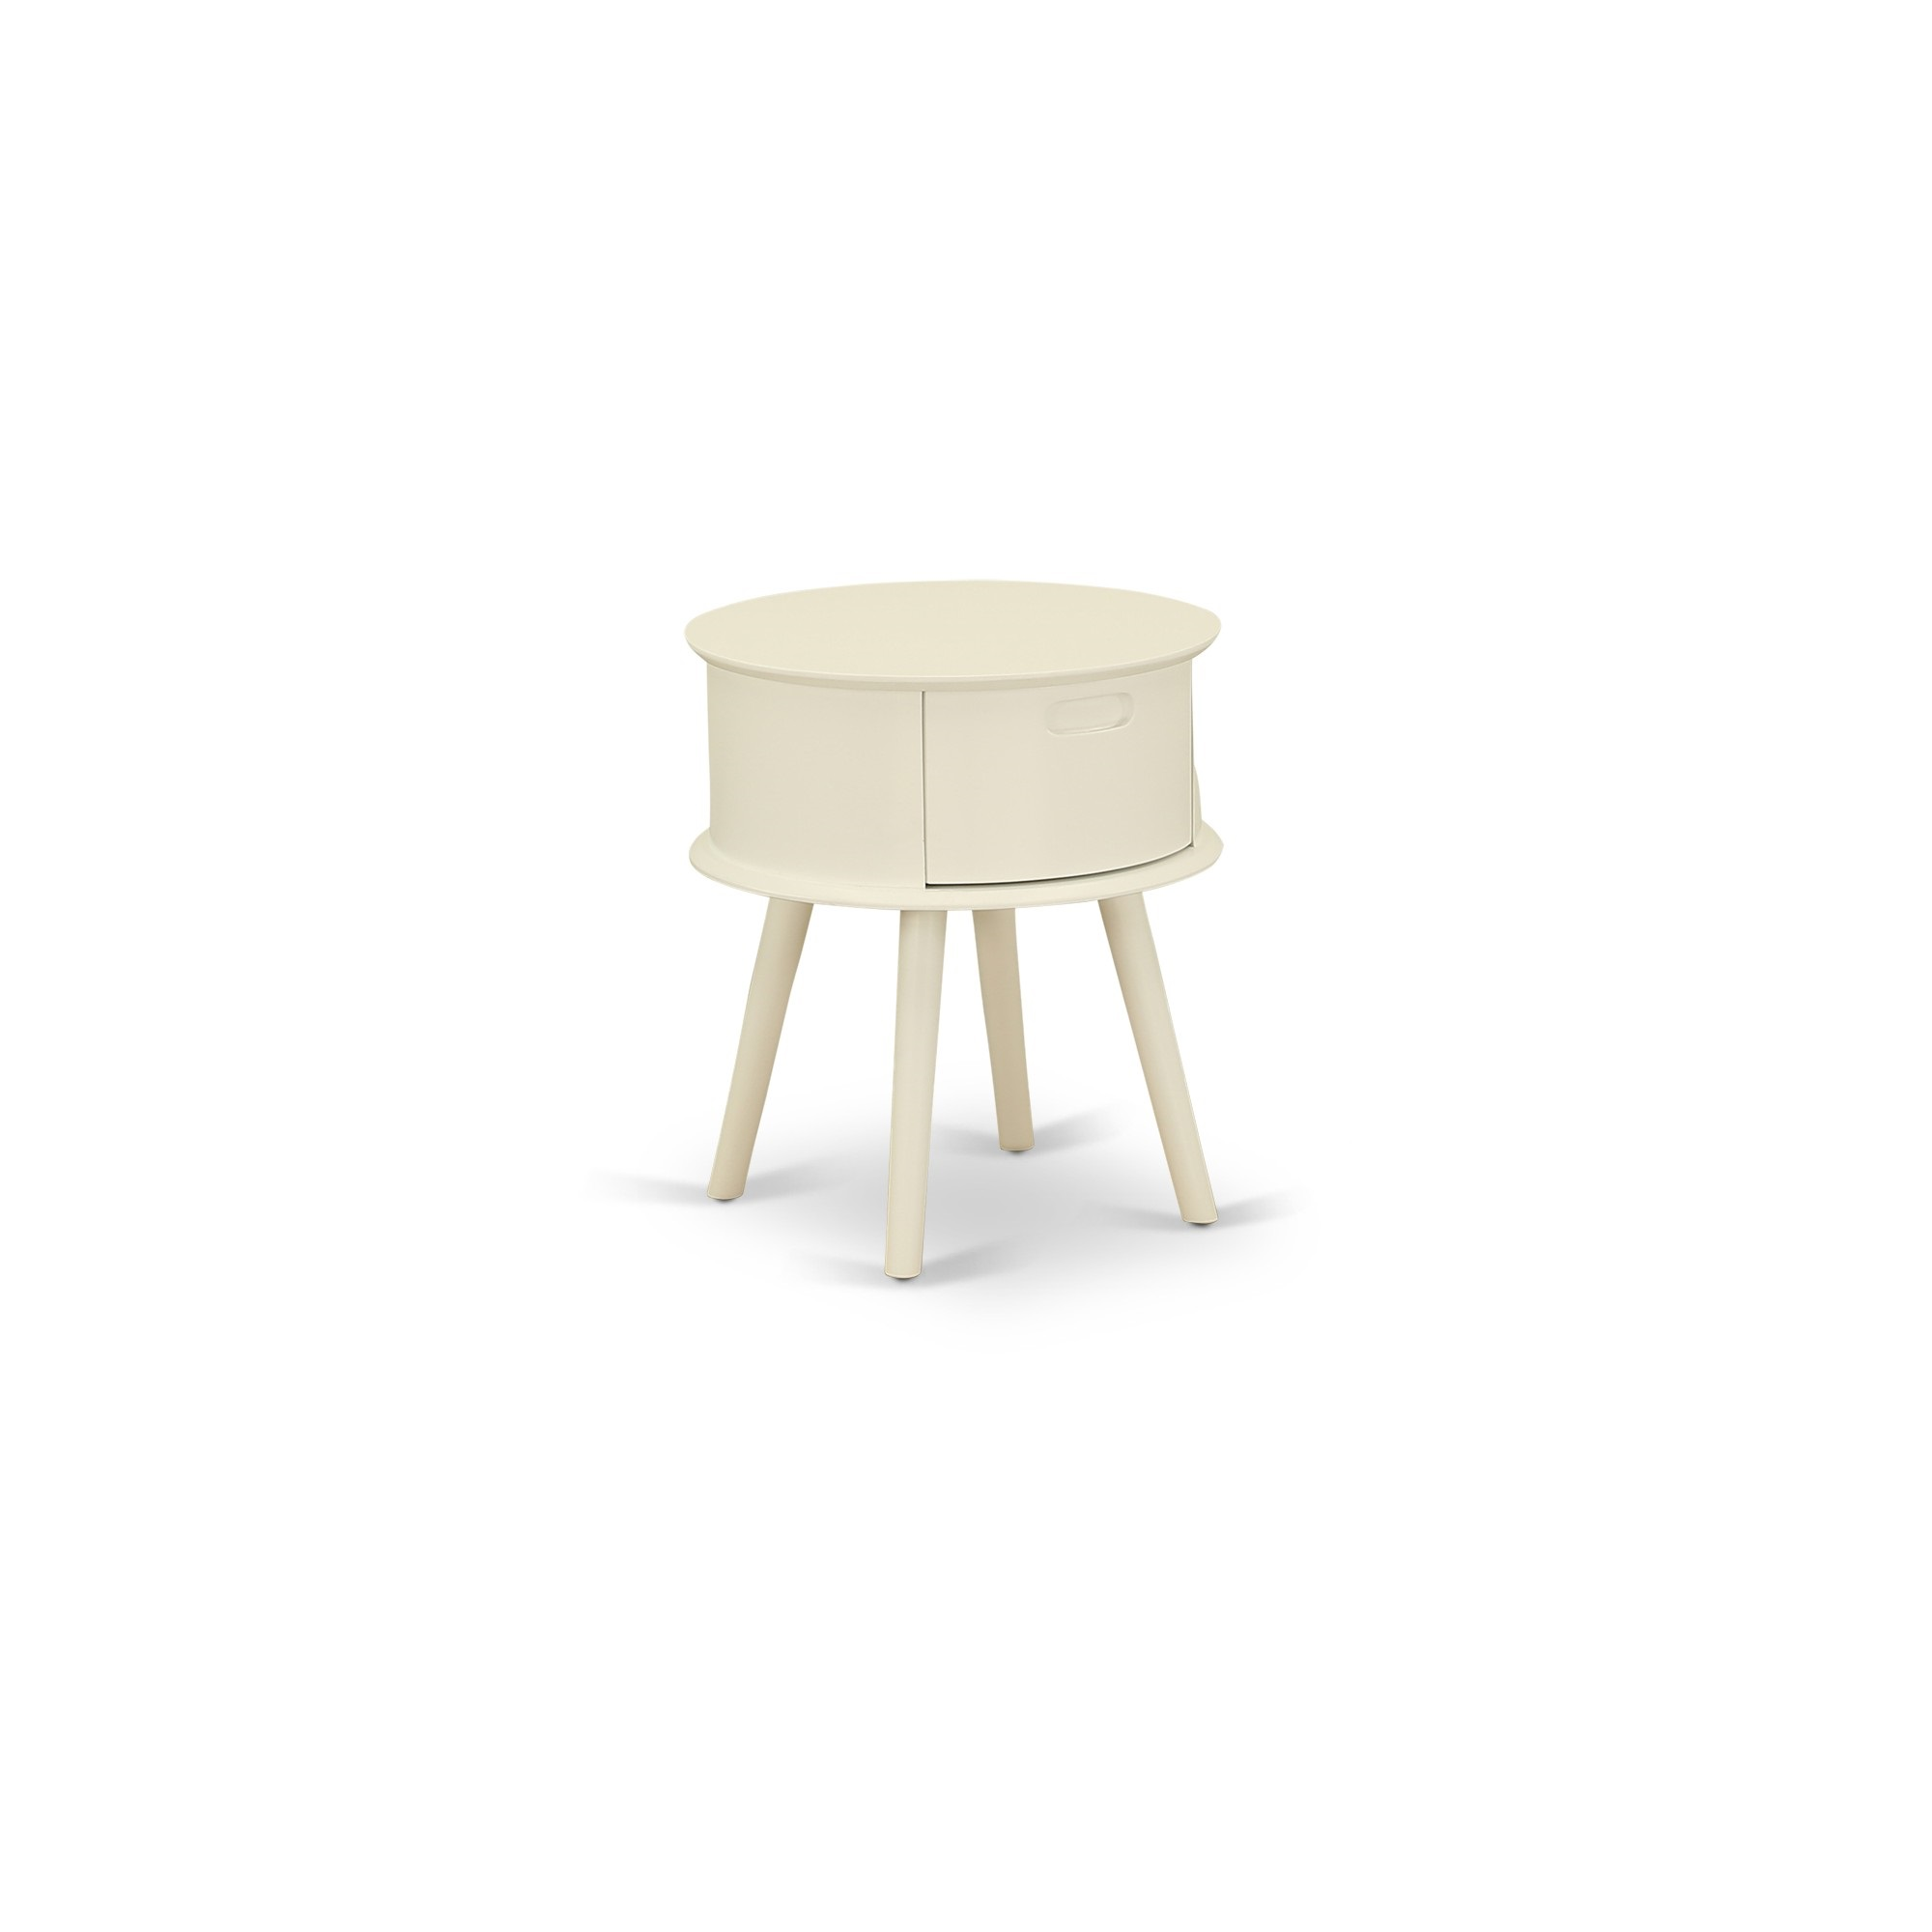 Gordon Round Night Stand End Table With Drawer In White Finish Walmart Com Walmart Com